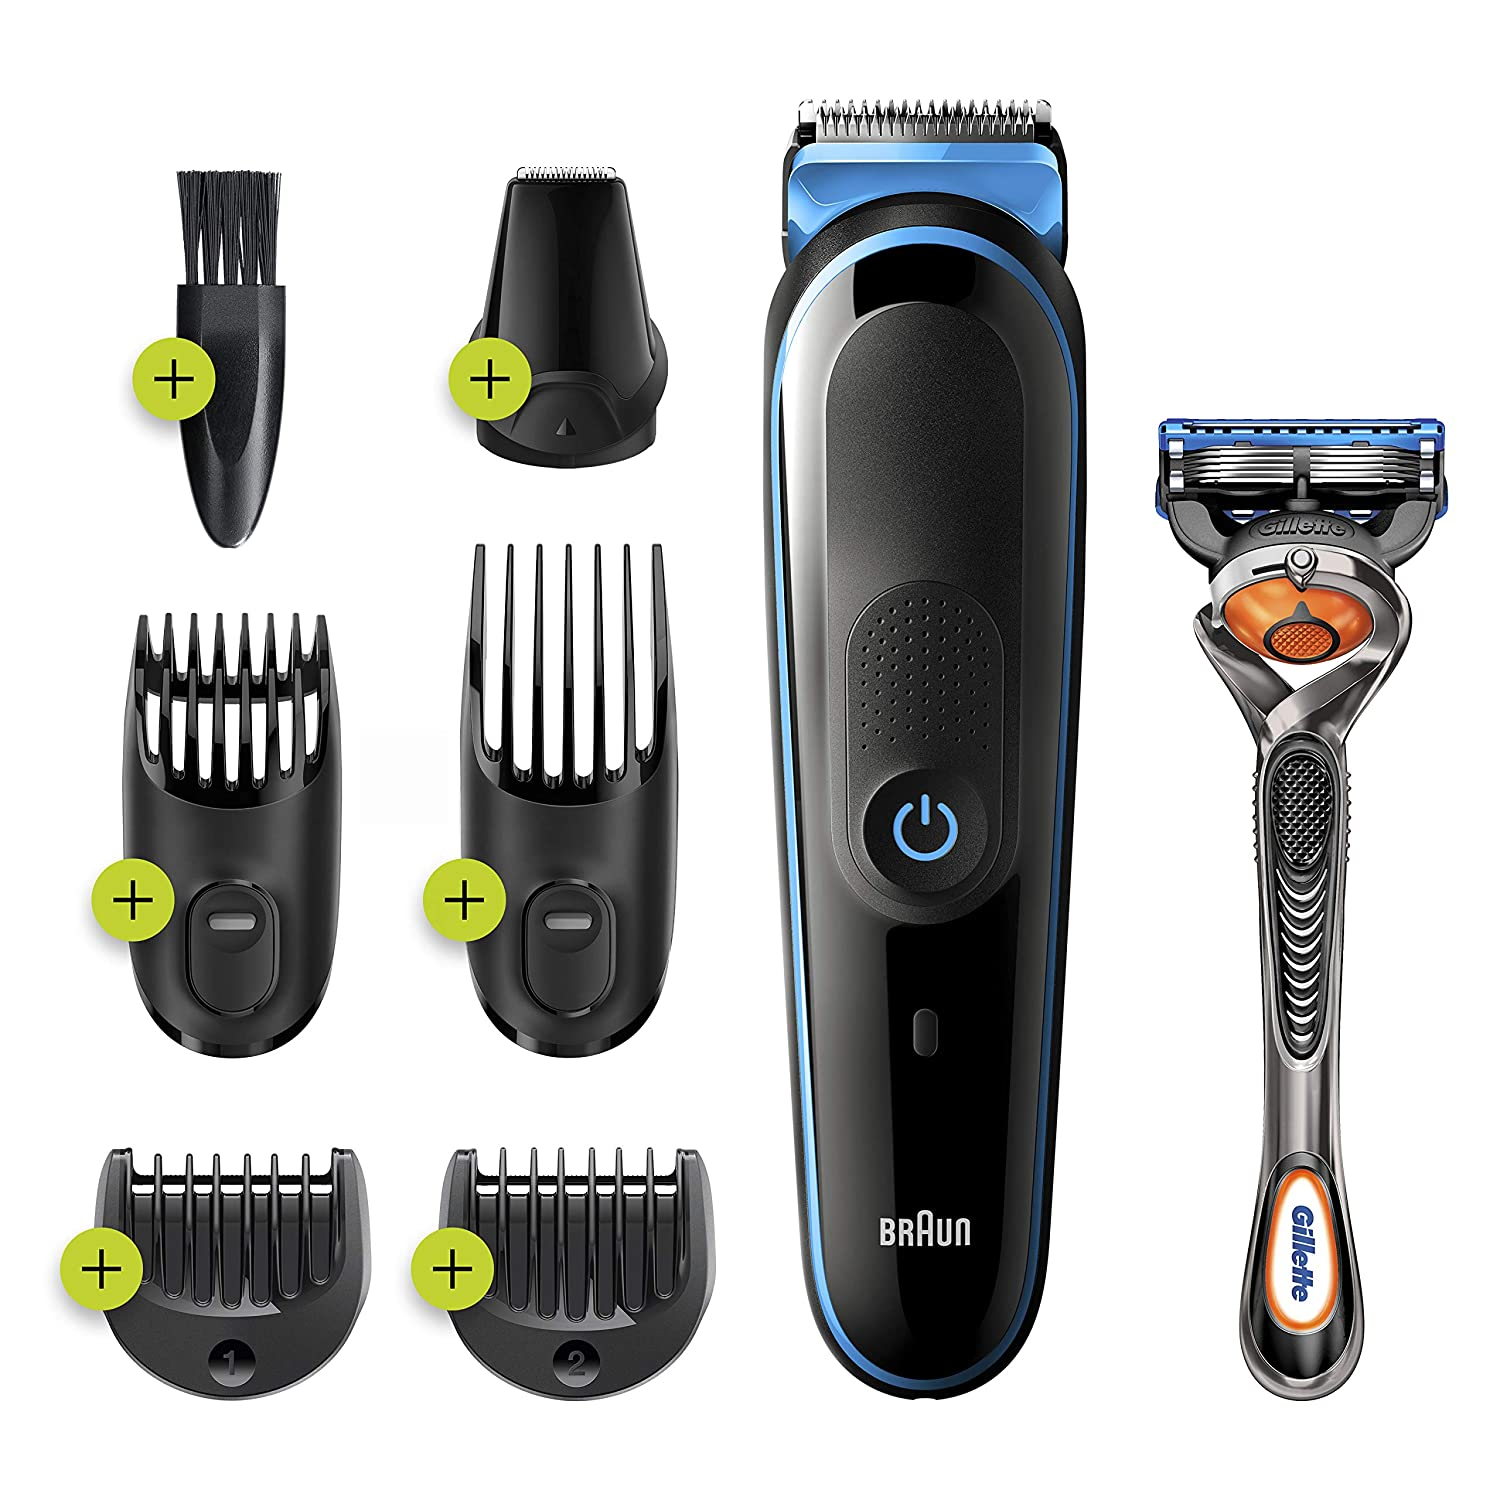 Braun 7-in-1 Trimmer MGK5245 Beard Trimmer for Men, face Trimmer and Hair Clipper, Black/Blue